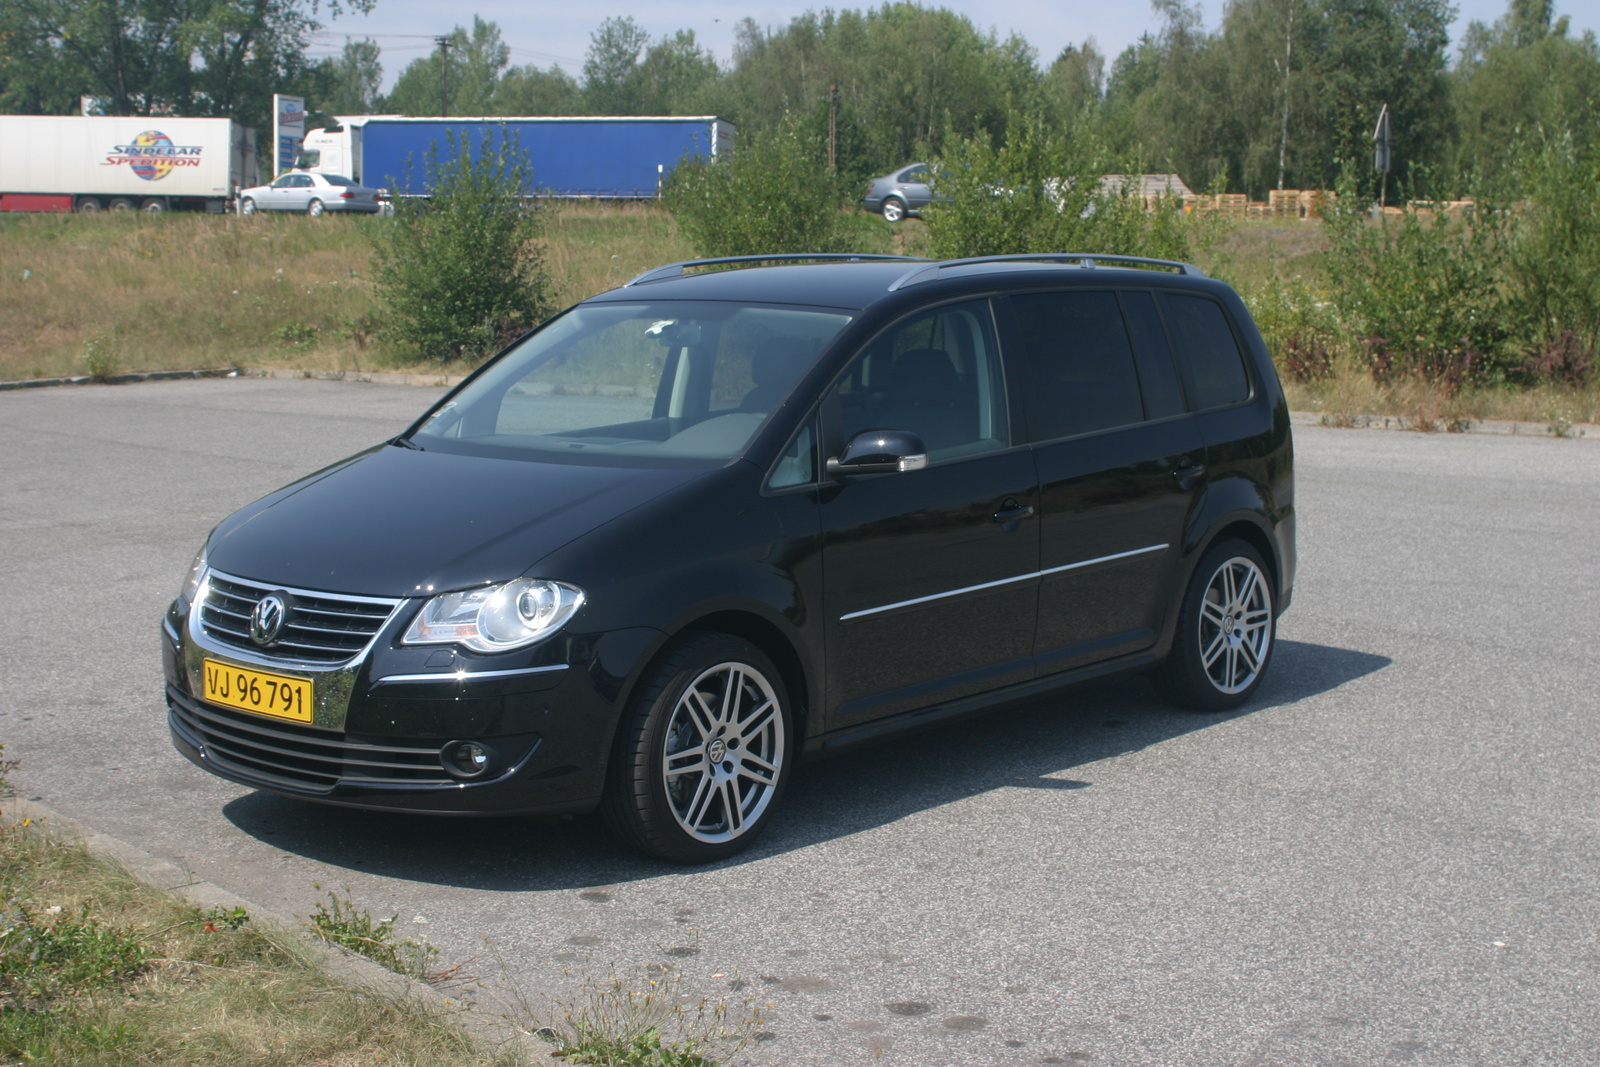 2007 volkswagen touran pictures cargurus. Black Bedroom Furniture Sets. Home Design Ideas